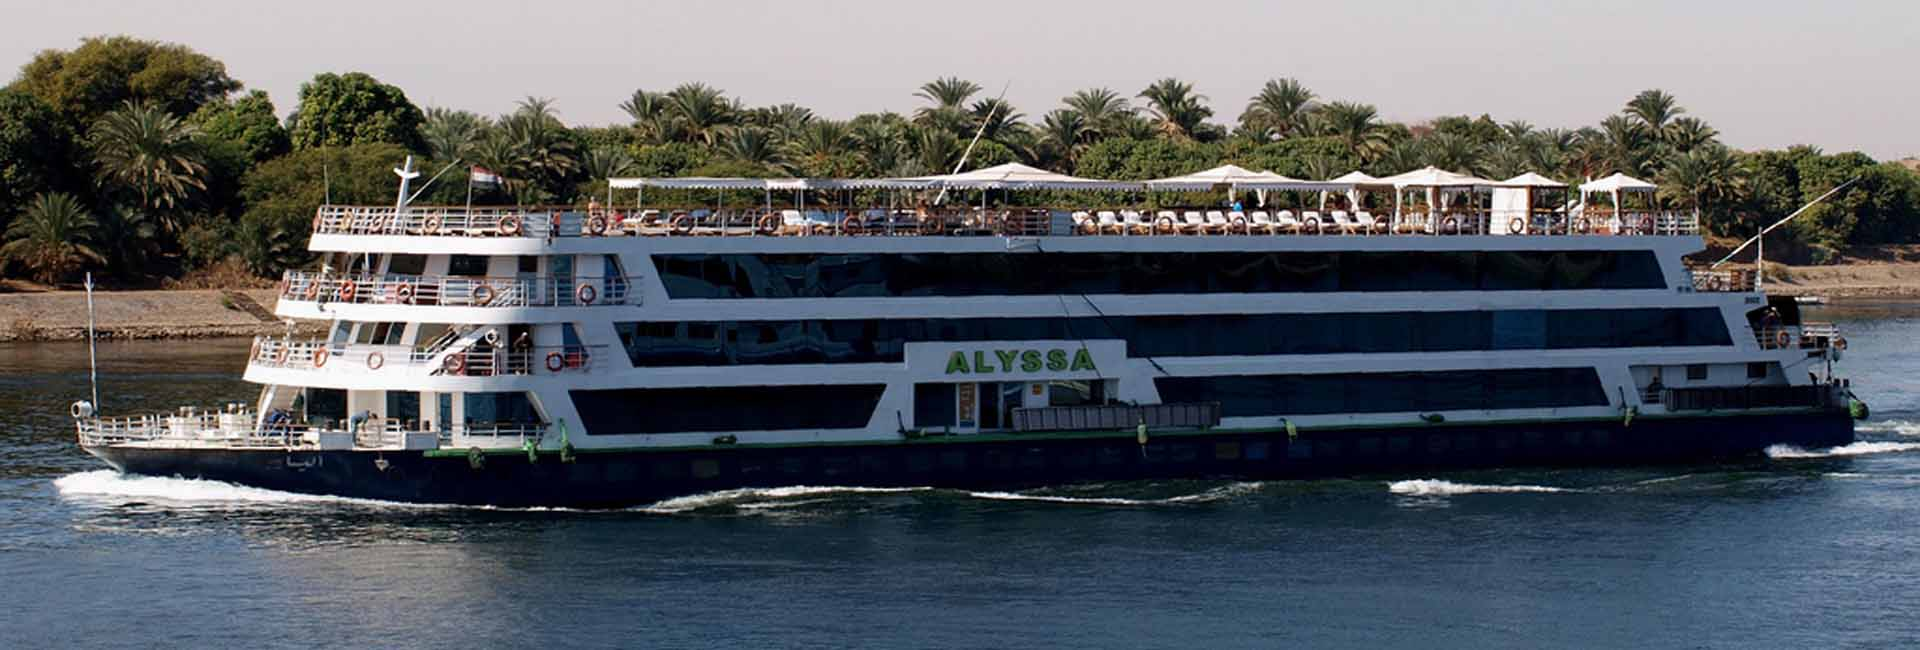 Alyssa Nile Cruise